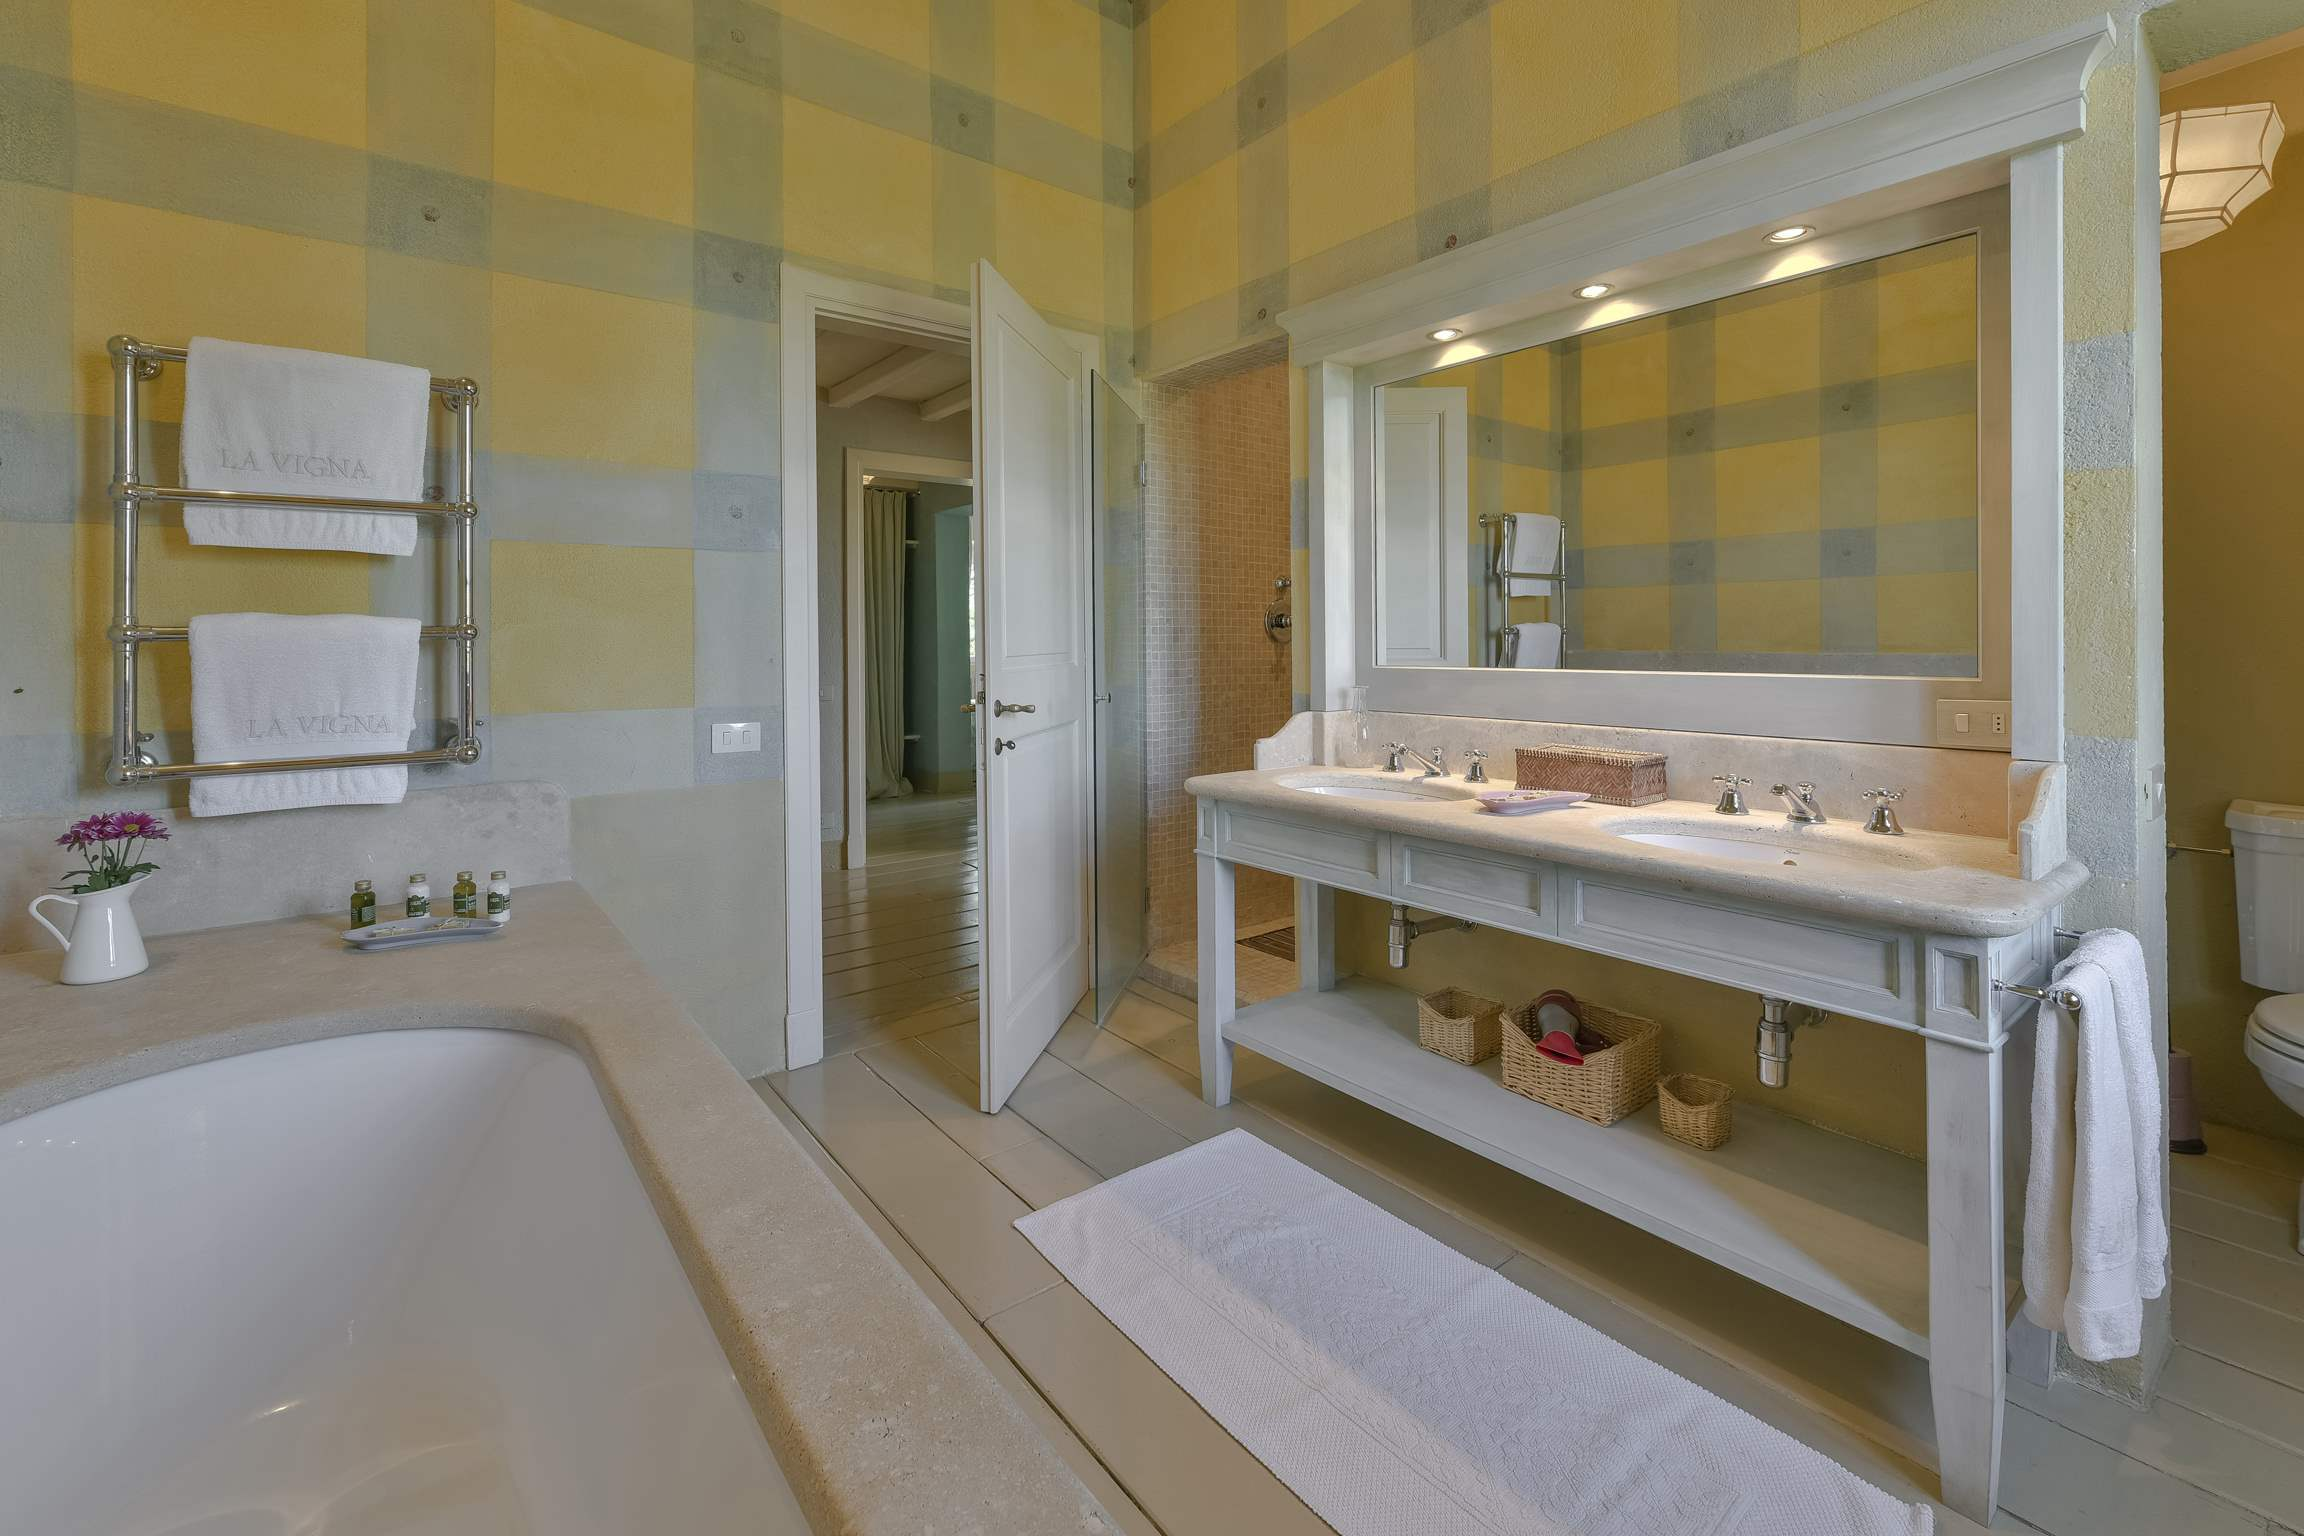 Villa Maremma 1, 7 bedroom villa in South Tuscany - Maremma, Tuscany Photo #29